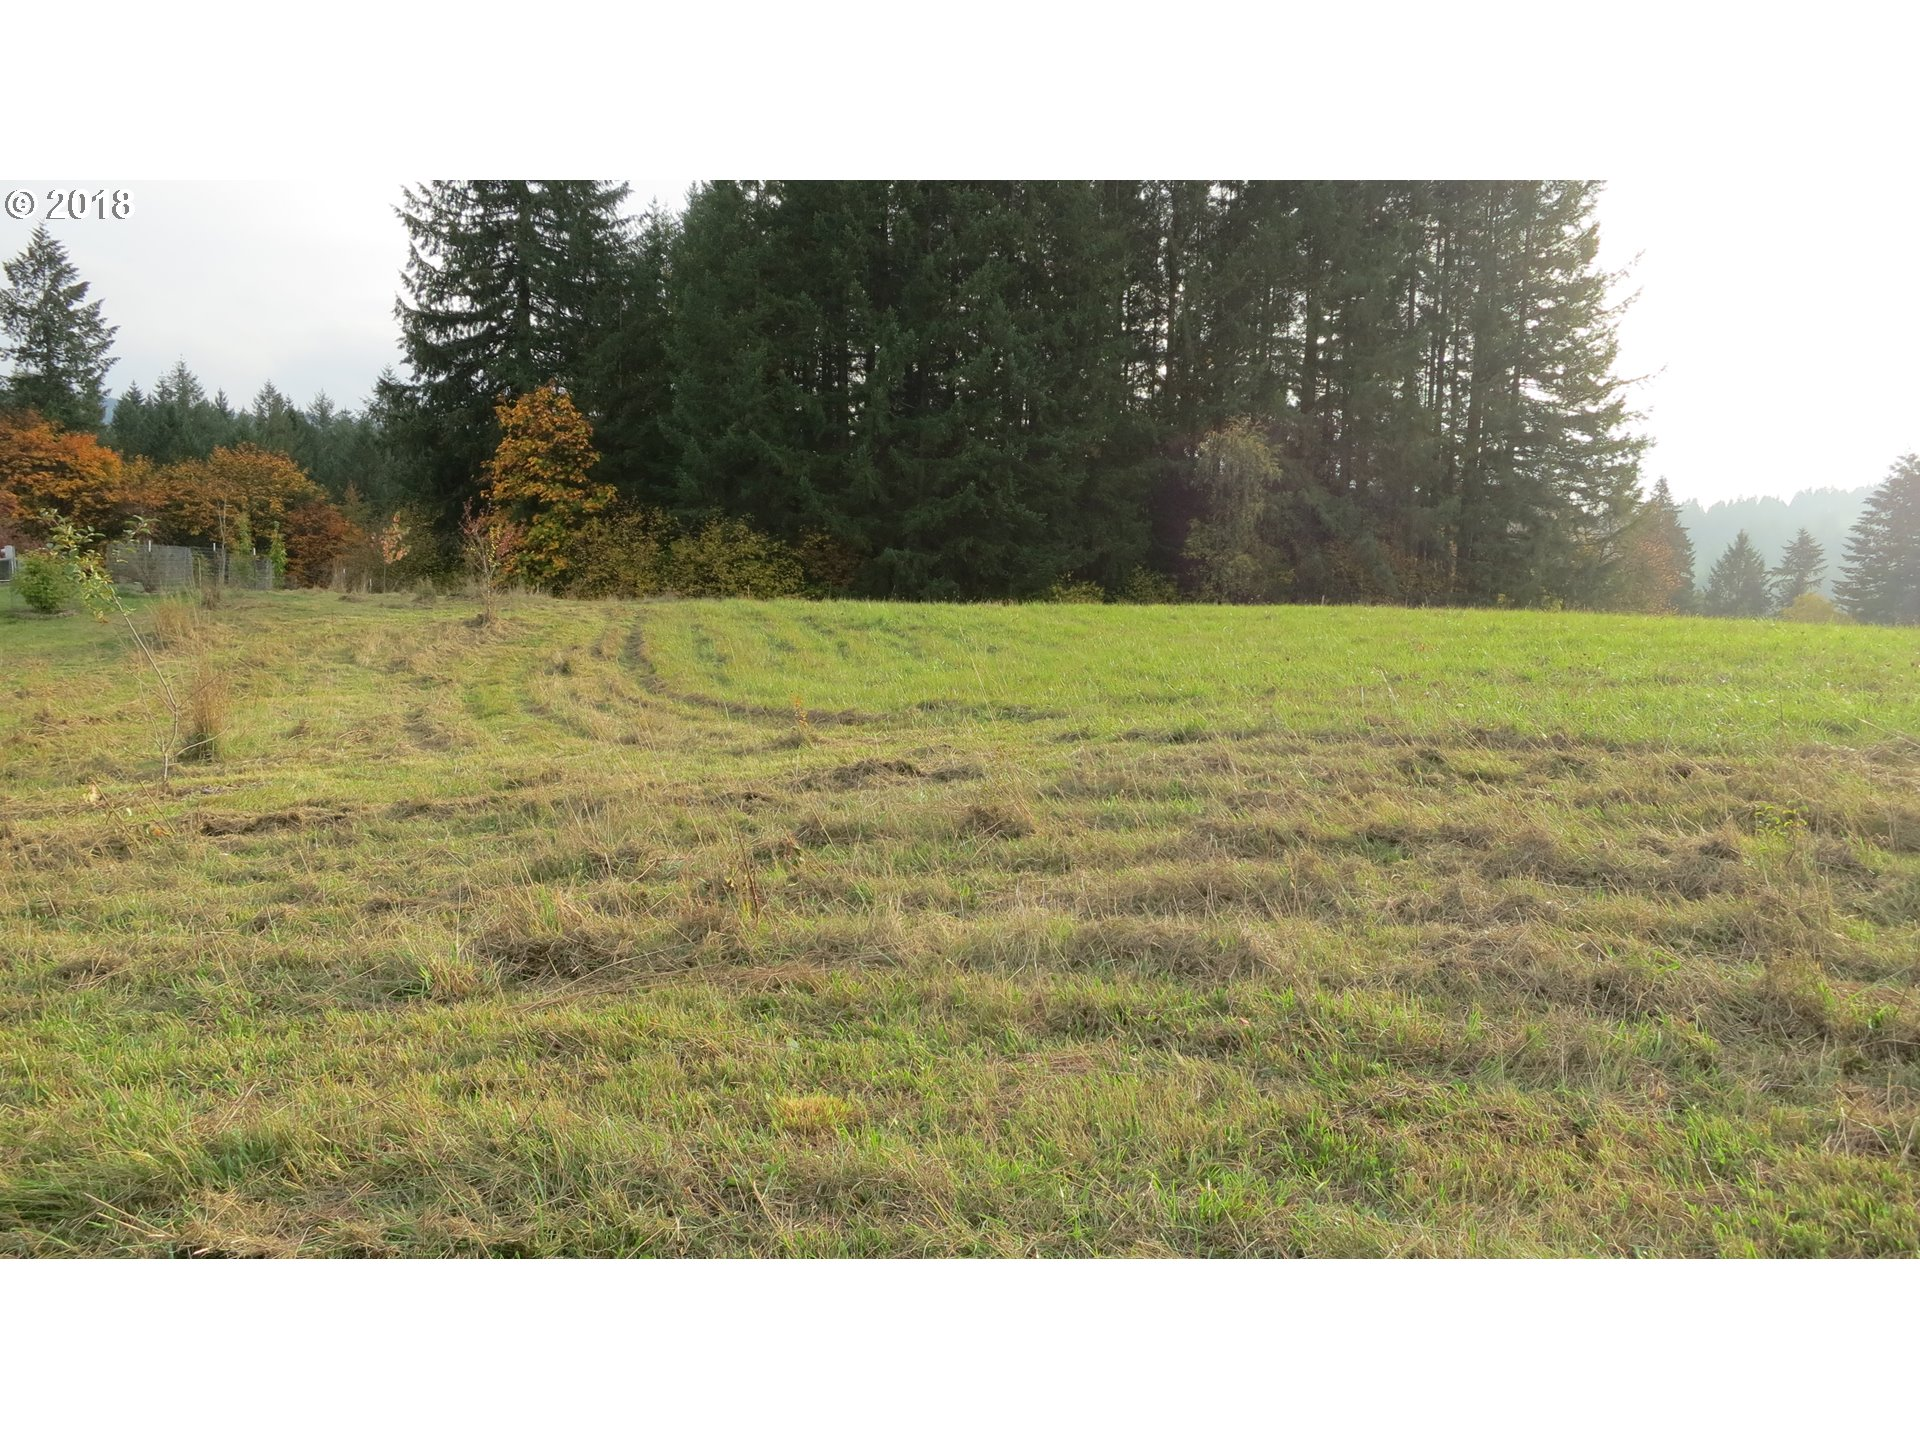 20123 NE 242ND (east of) AVE Battle Ground, WA 98604 - MLS #: 18632598